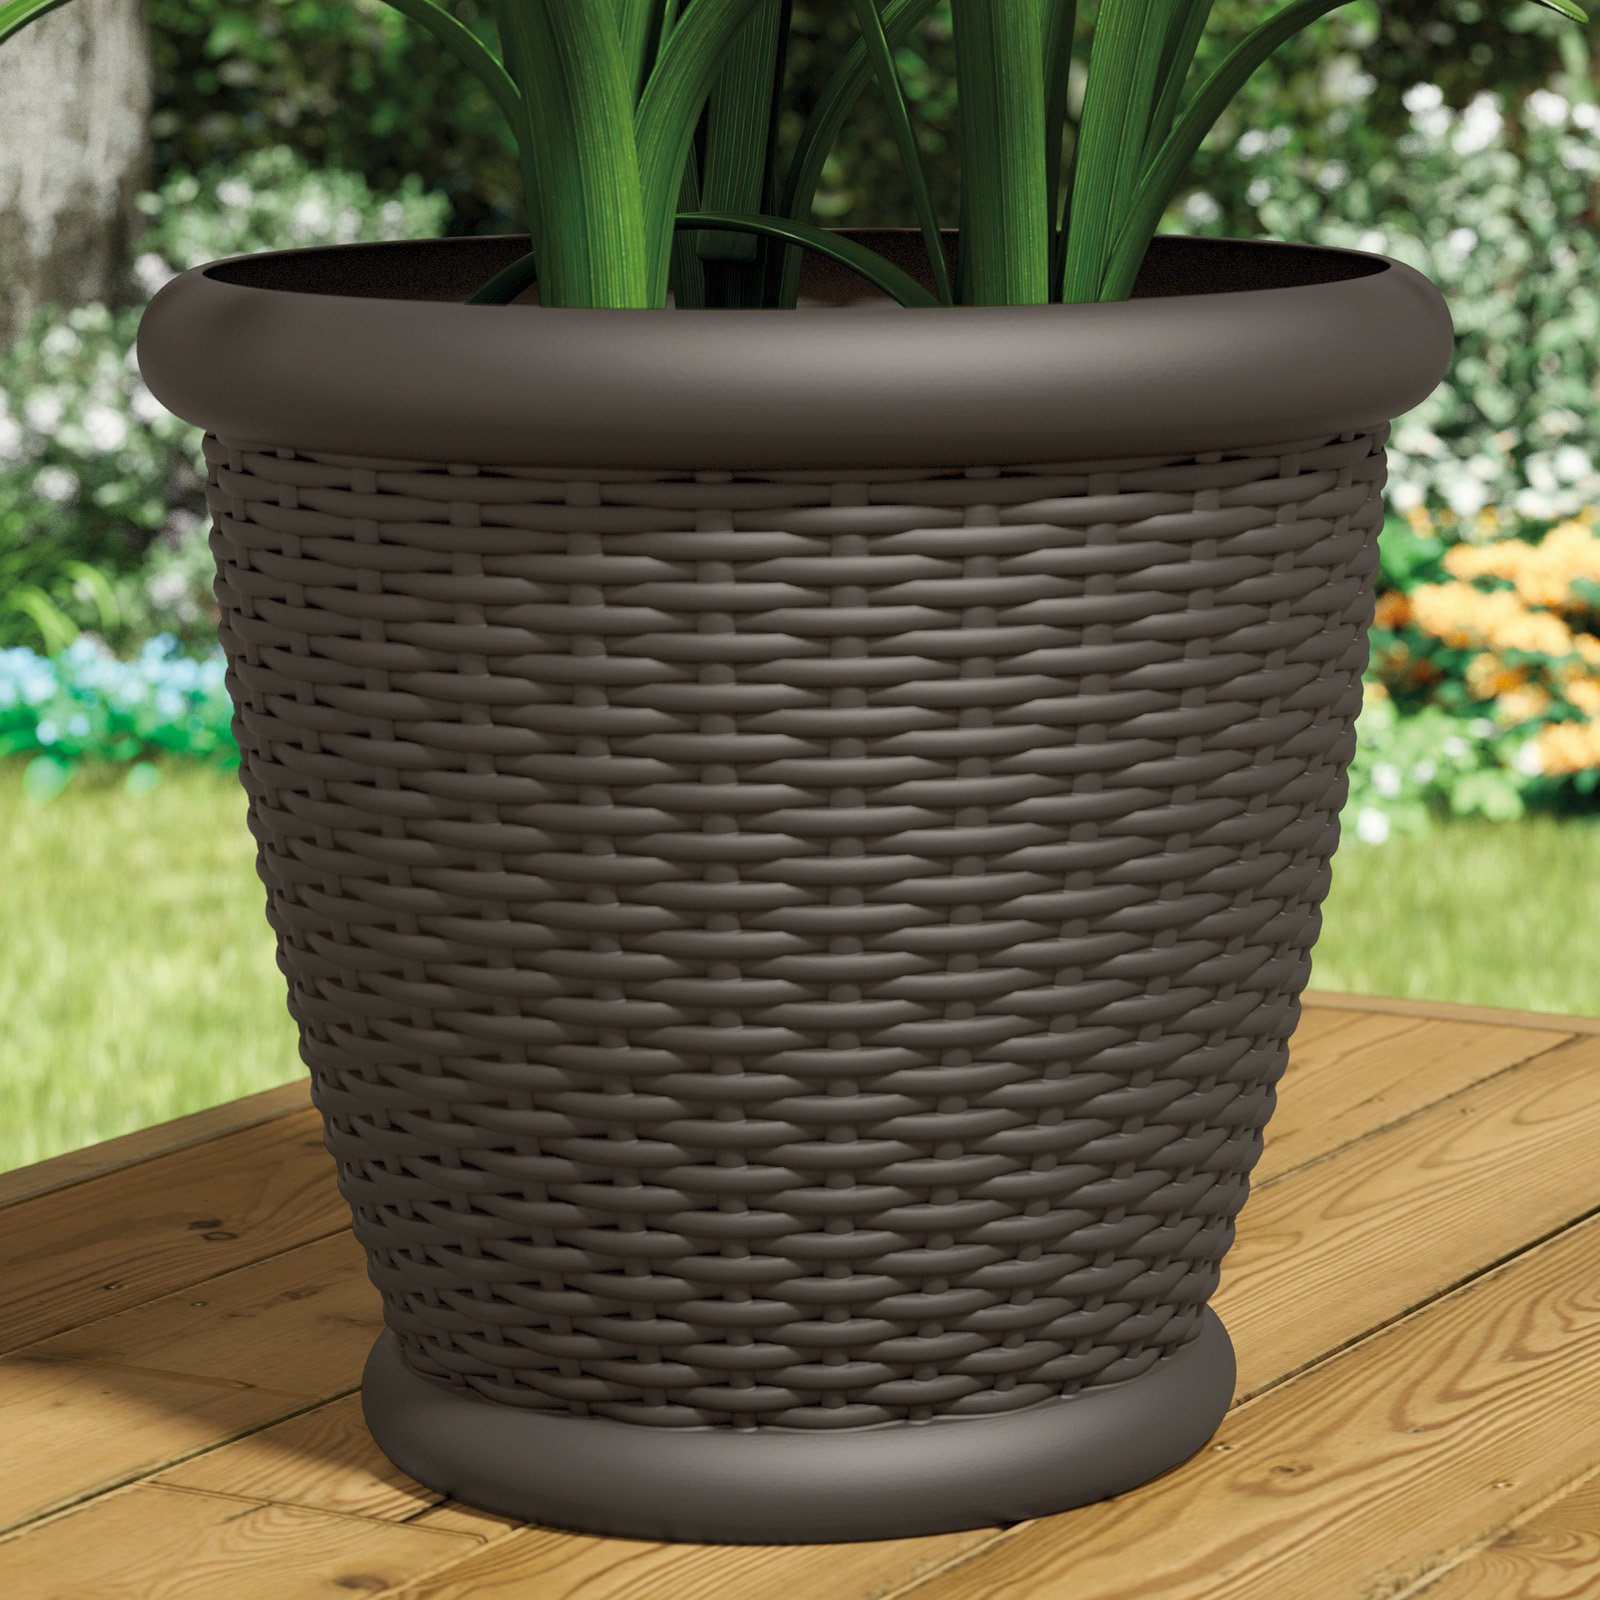 Suncast Willow Resin Wicker Planter Set of 2 by Suncast Corp